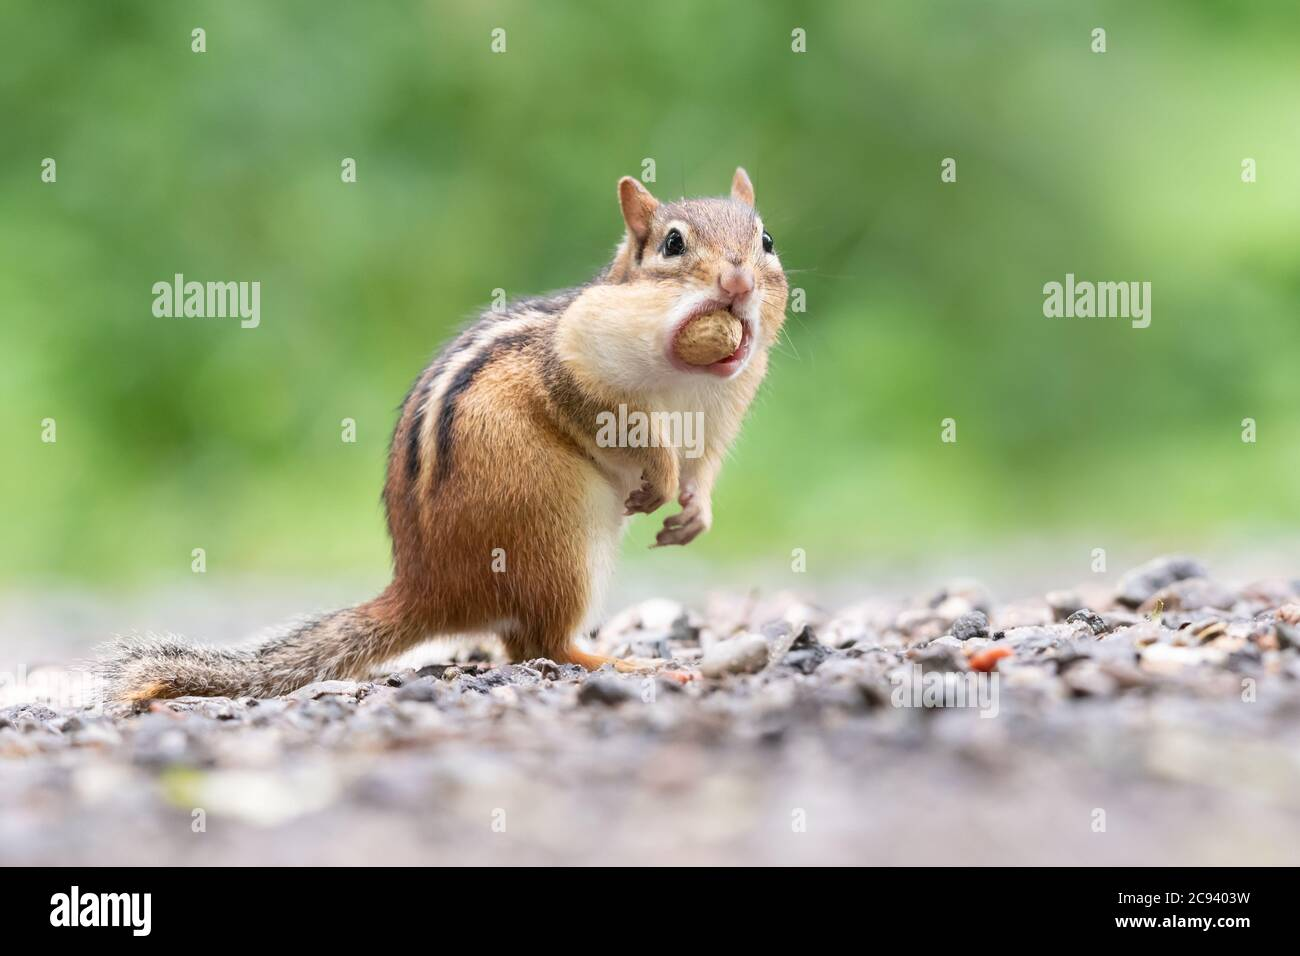 An Eastern Chipmunk pauses after stuffing an entire peanut in its cheek pouches at Lynde Shores Conservation Area in Whitby, Ontario. Stock Photo